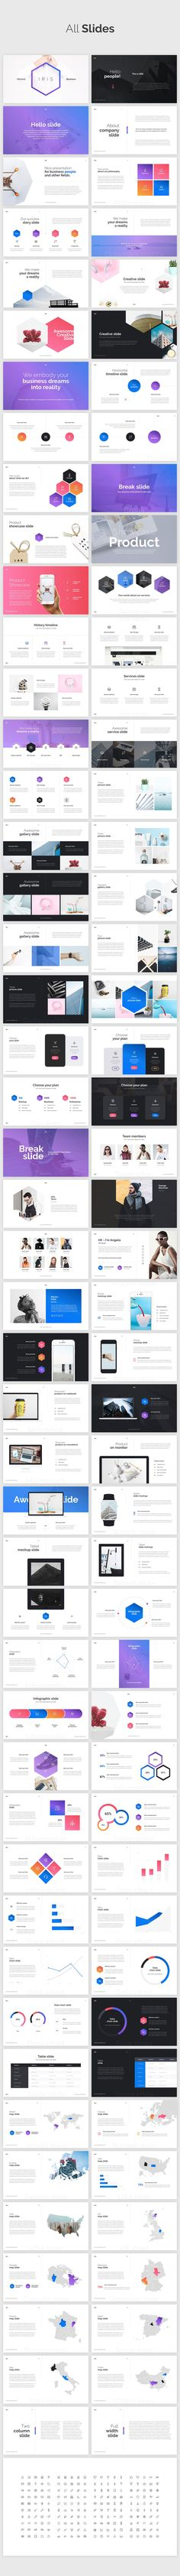 IRIS Minimal PowerPoint Template with bold punches of color, including blue, purple, pink, and orange. Subtle gradients and flat design to emulate the latest iOS design guidelines. A great slide presentation template/theme for technology app startups.